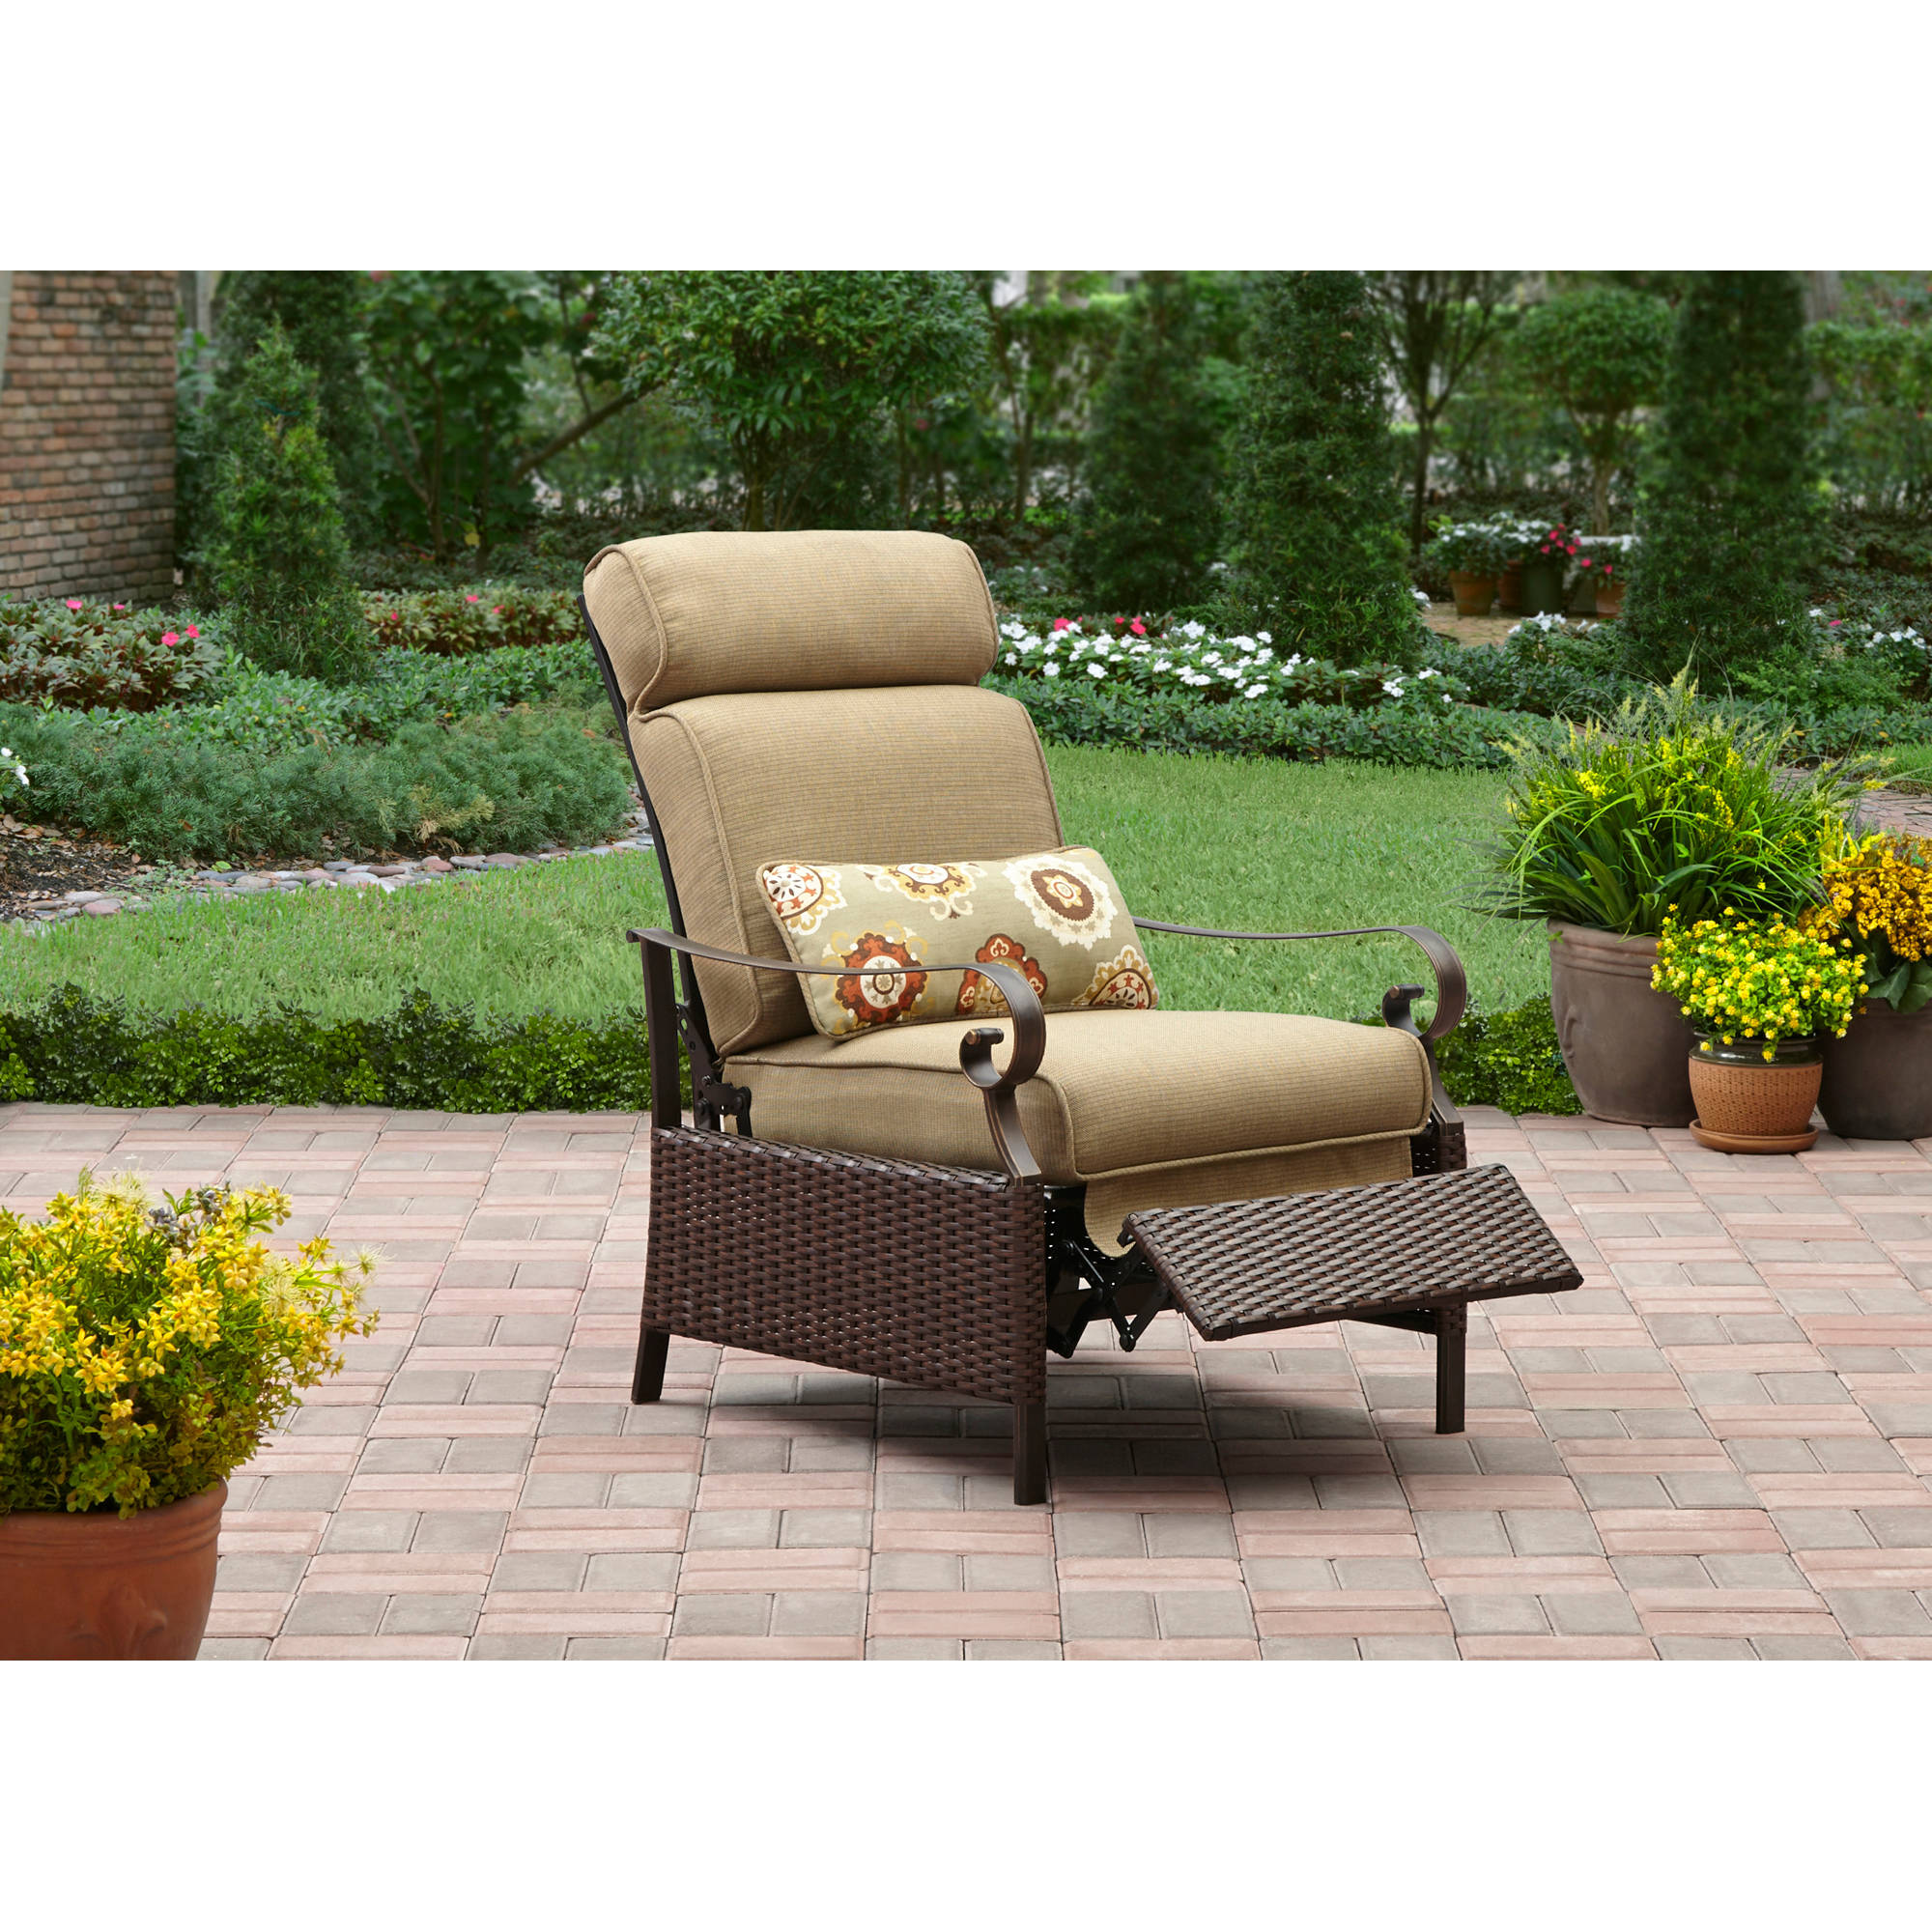 Better Homes and Gardens Riverwood Recliner Tan  sc 1 st  Walmart & Patio Reclining Chairs islam-shia.org